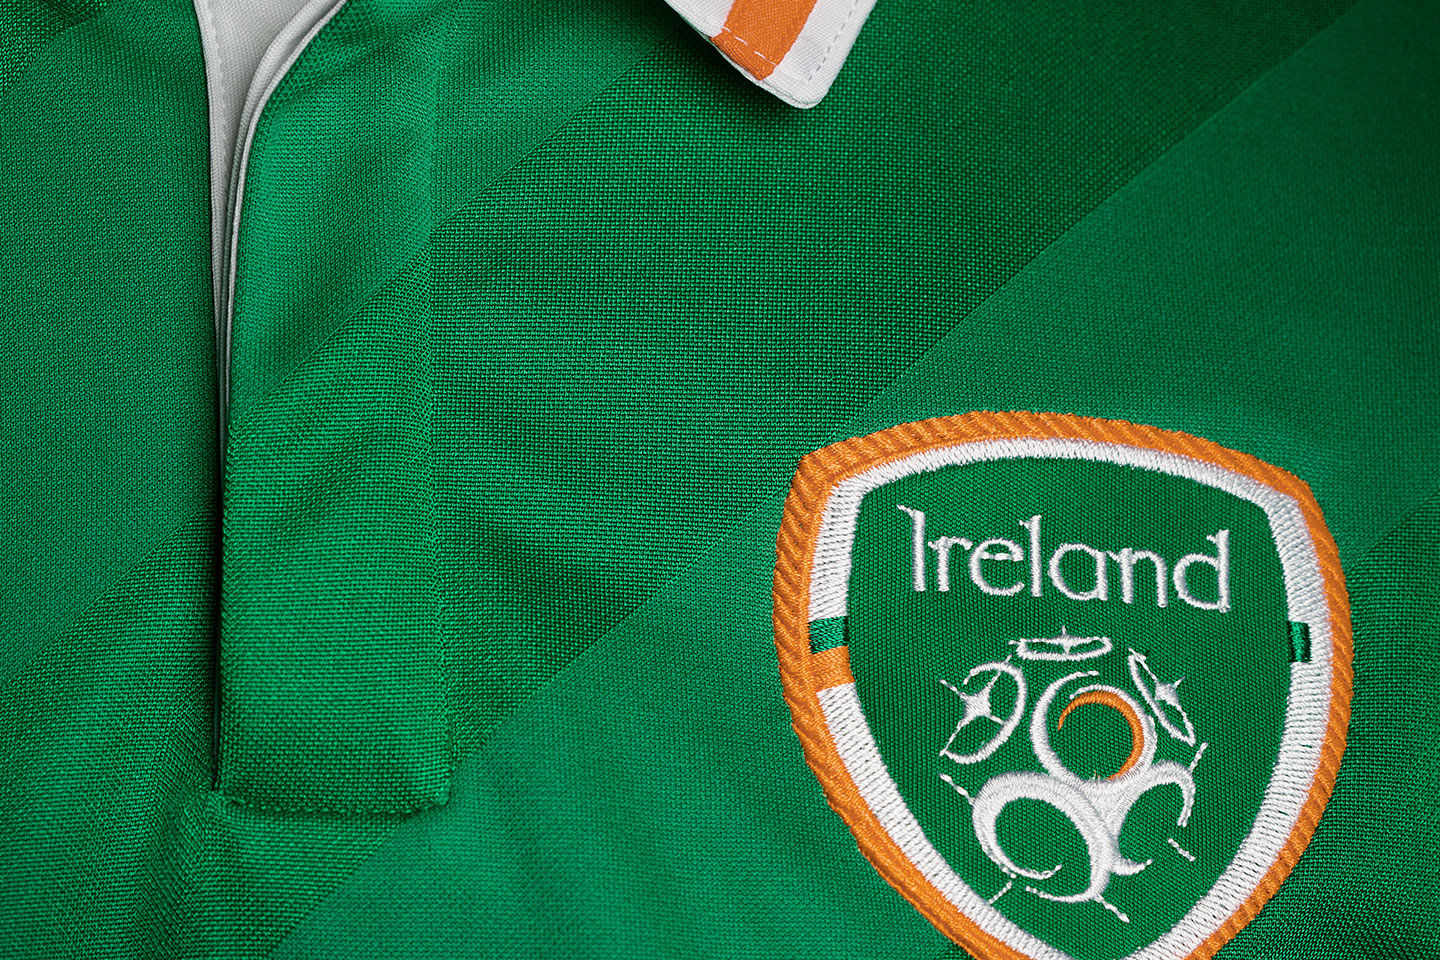 Switch and get the new Ireland jersey free plus 15% off your home electricity*